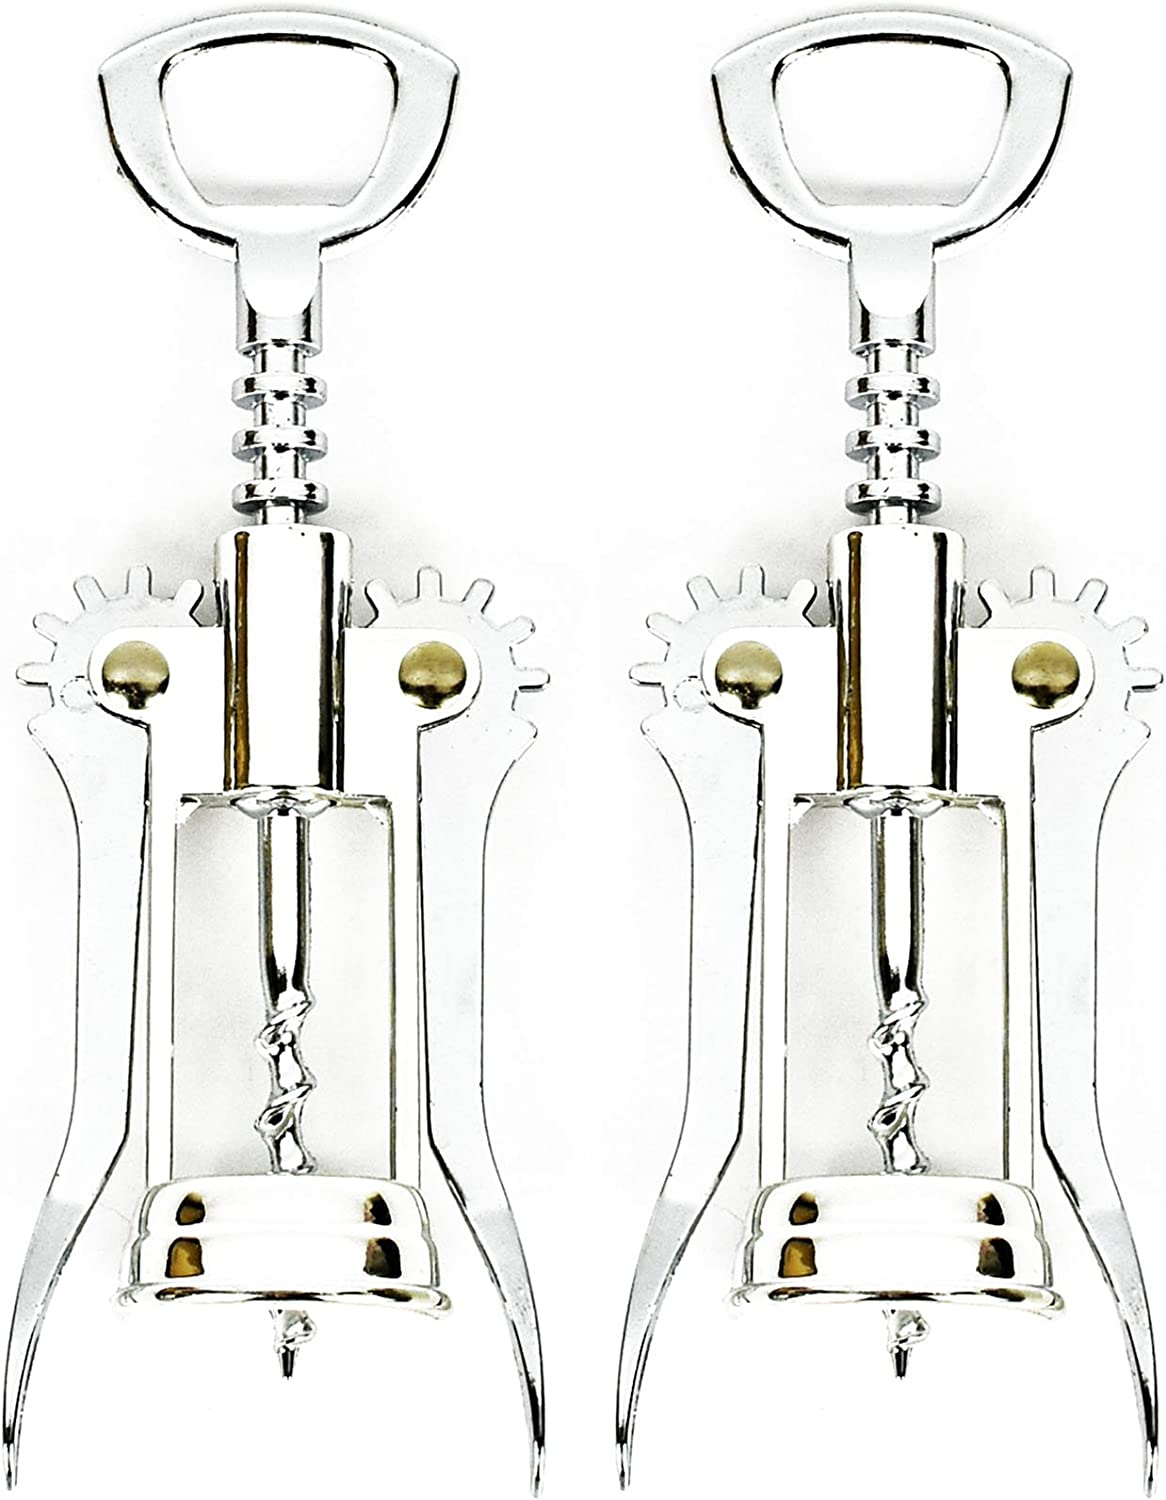 BlakeCroft SEAL limited product Set of 2 Winged – Max 90% OFF Multifun Alloy Corkscrew Zinc